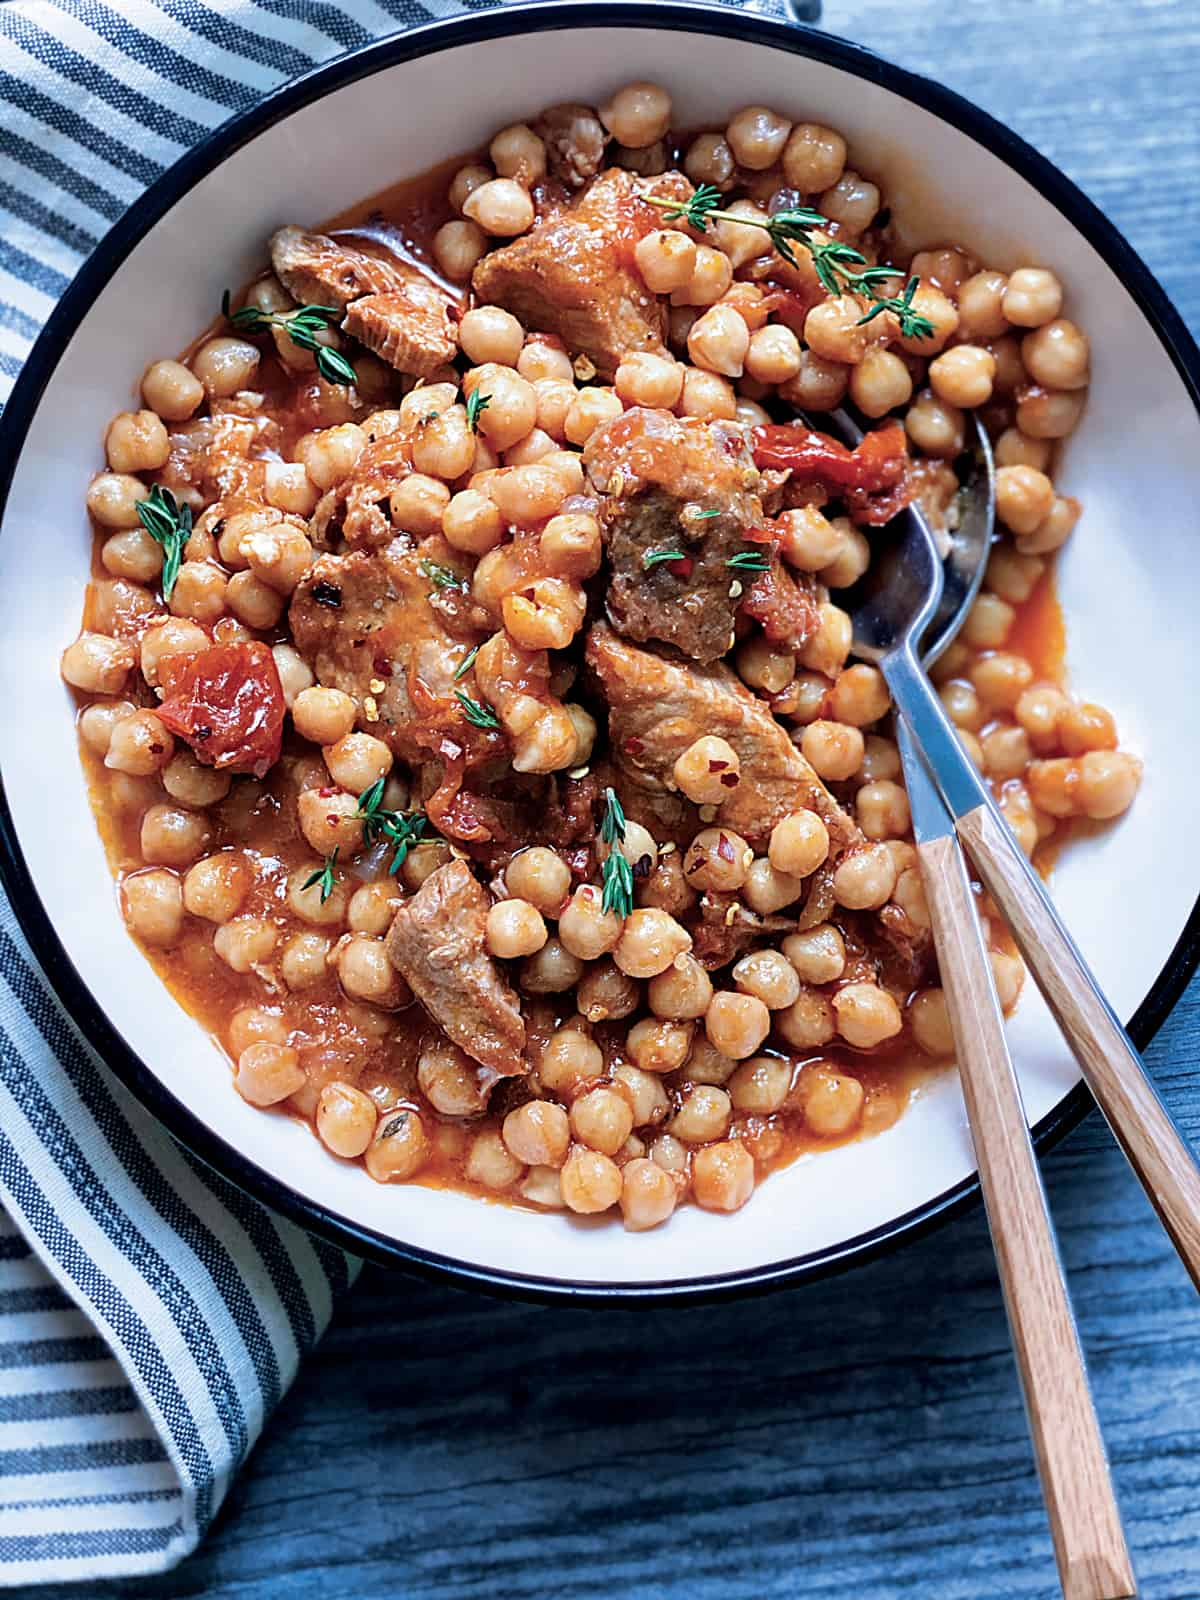 A plate with chickpea and pork stew.